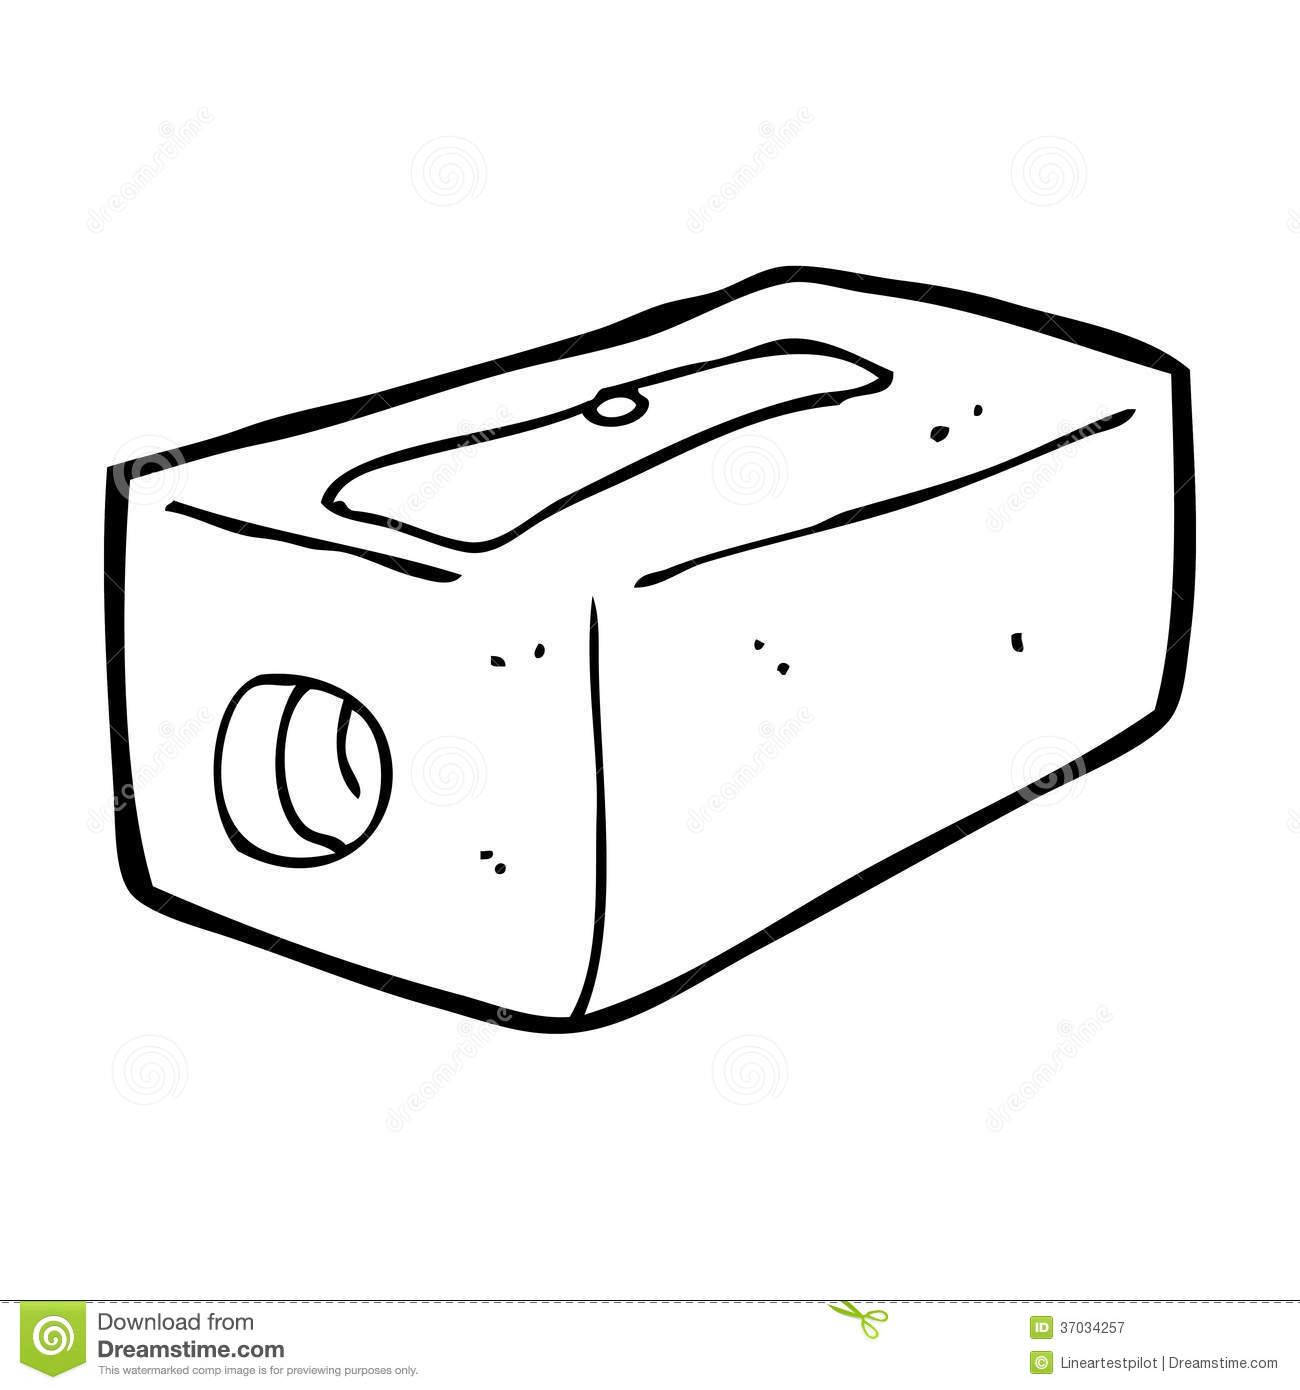 Cartoon stock illustration of. Sharpener clipart small pencil banner freeuse download